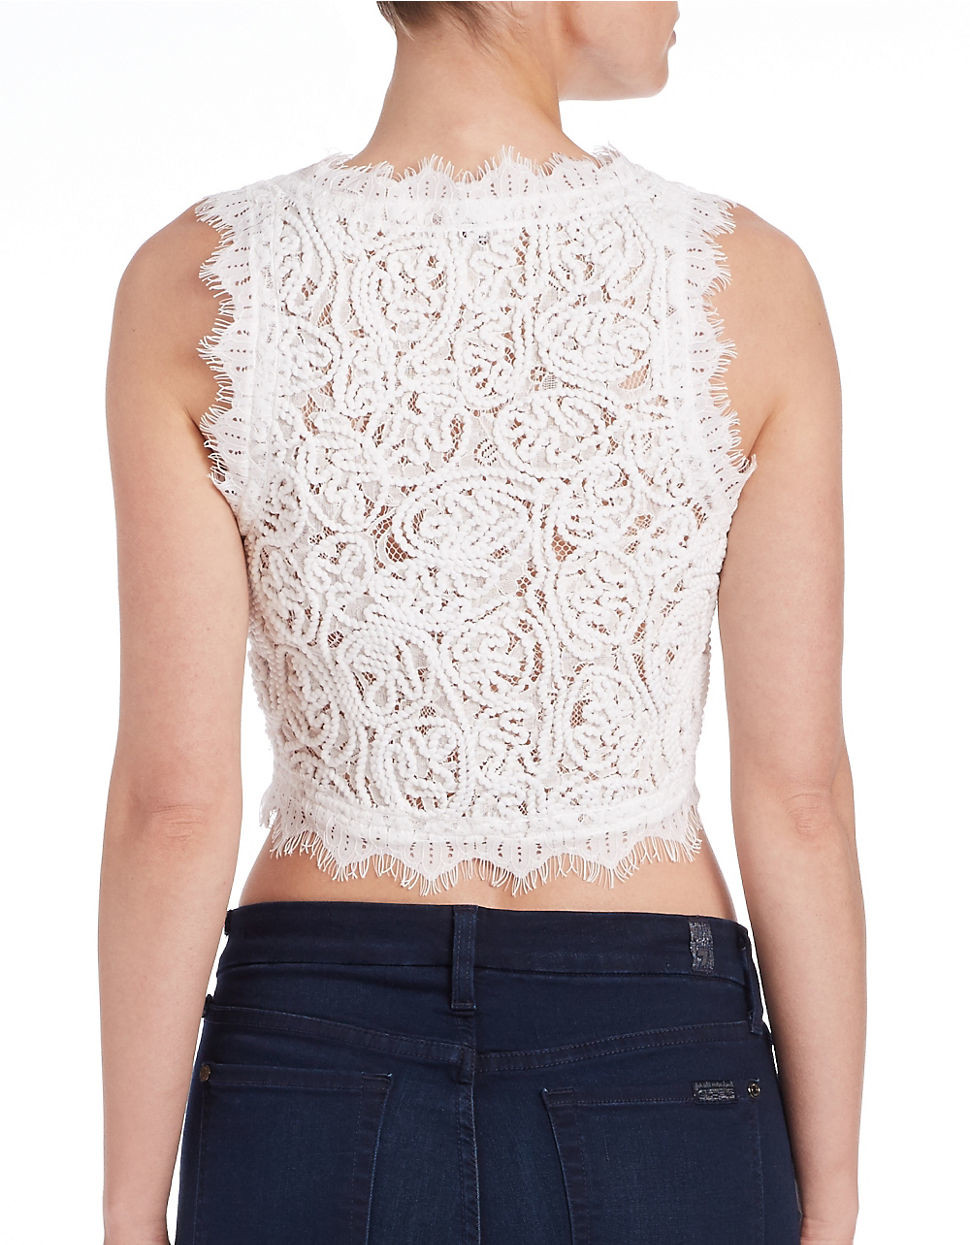 Crochet Sleeveless top Fresh Lyst Lord & Taylor Sleeveless Crochet Lace Crop top In Blue Of Perfect 47 Images Crochet Sleeveless top